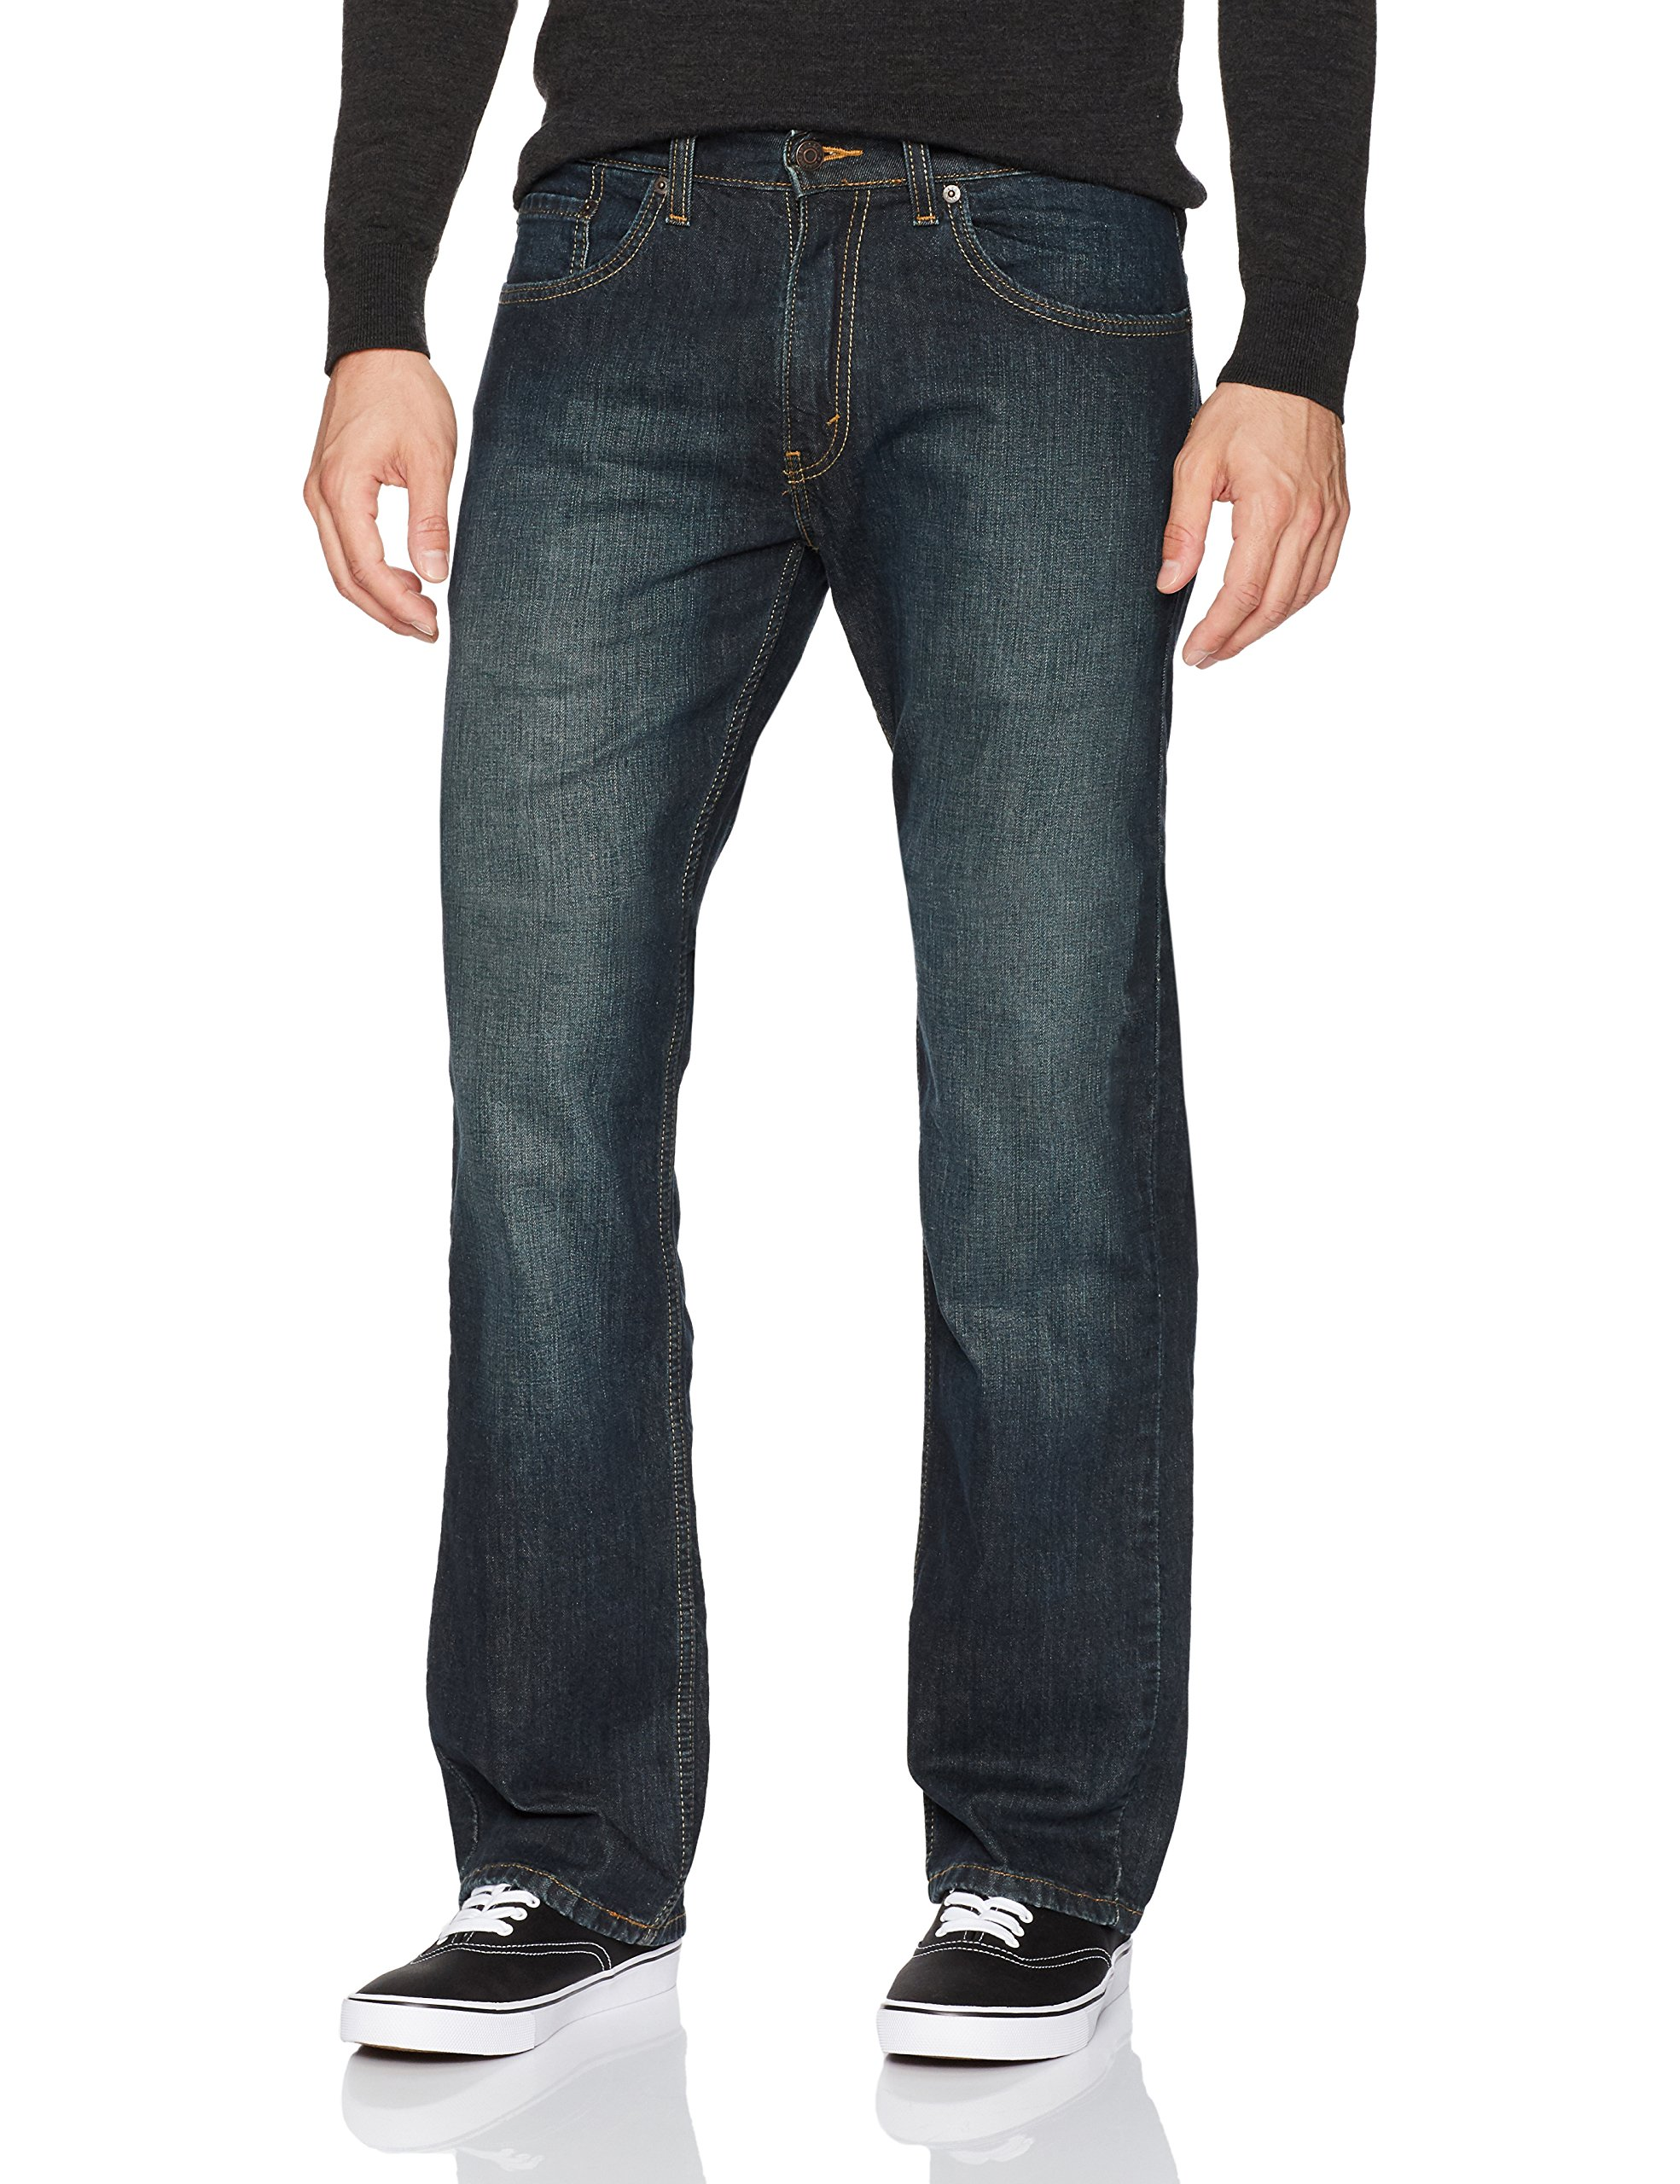 Signature by Levi Strauss & Co. Gold Label Men's Relaxed Fit Jeans, Lakeshore Stretch 36W x 30L